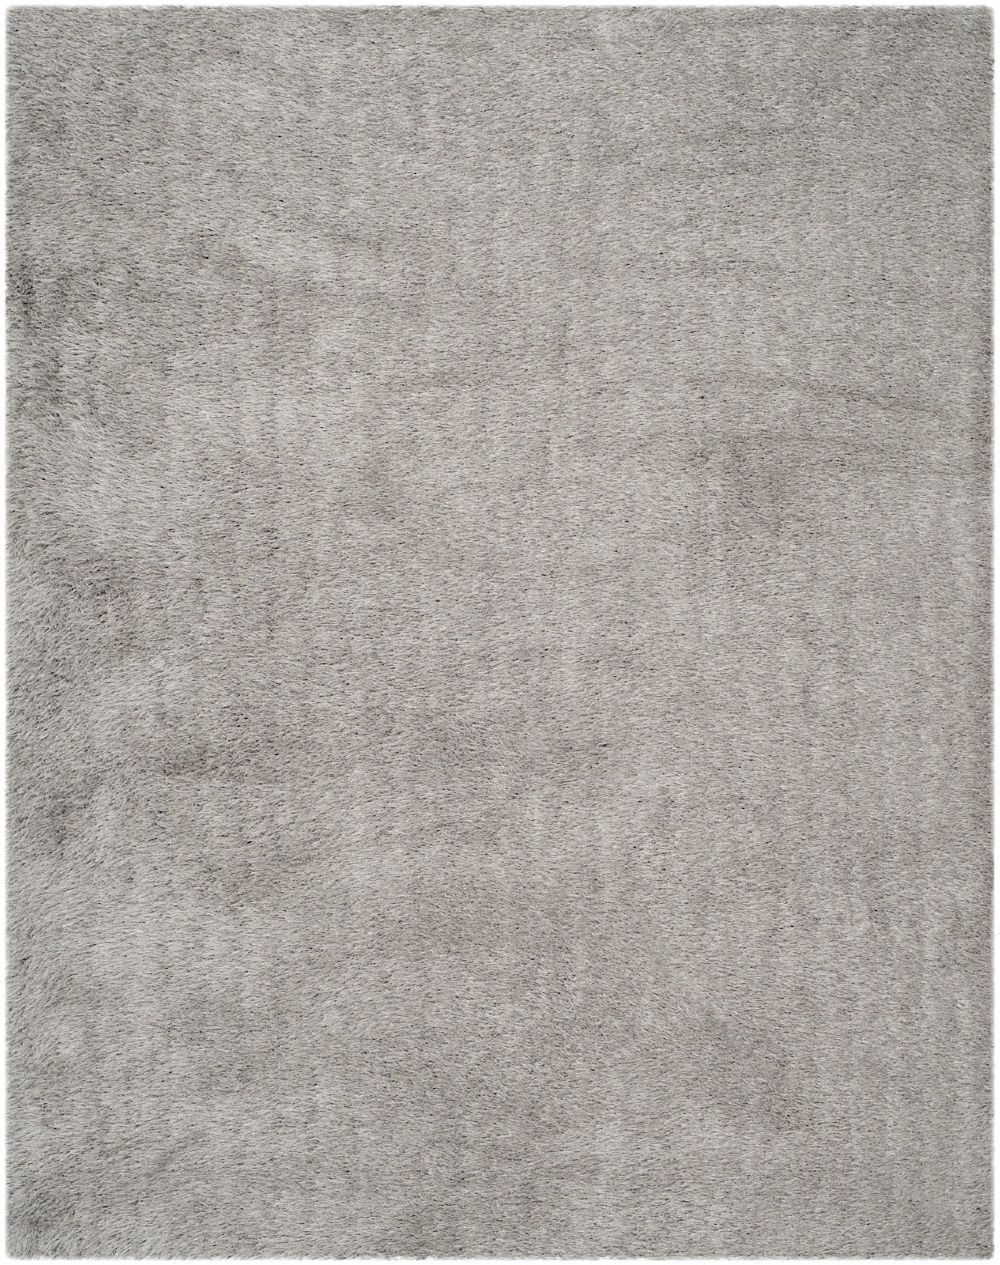 Safavieh Venice Shag Shag Area Rug Collection Rugpal Com